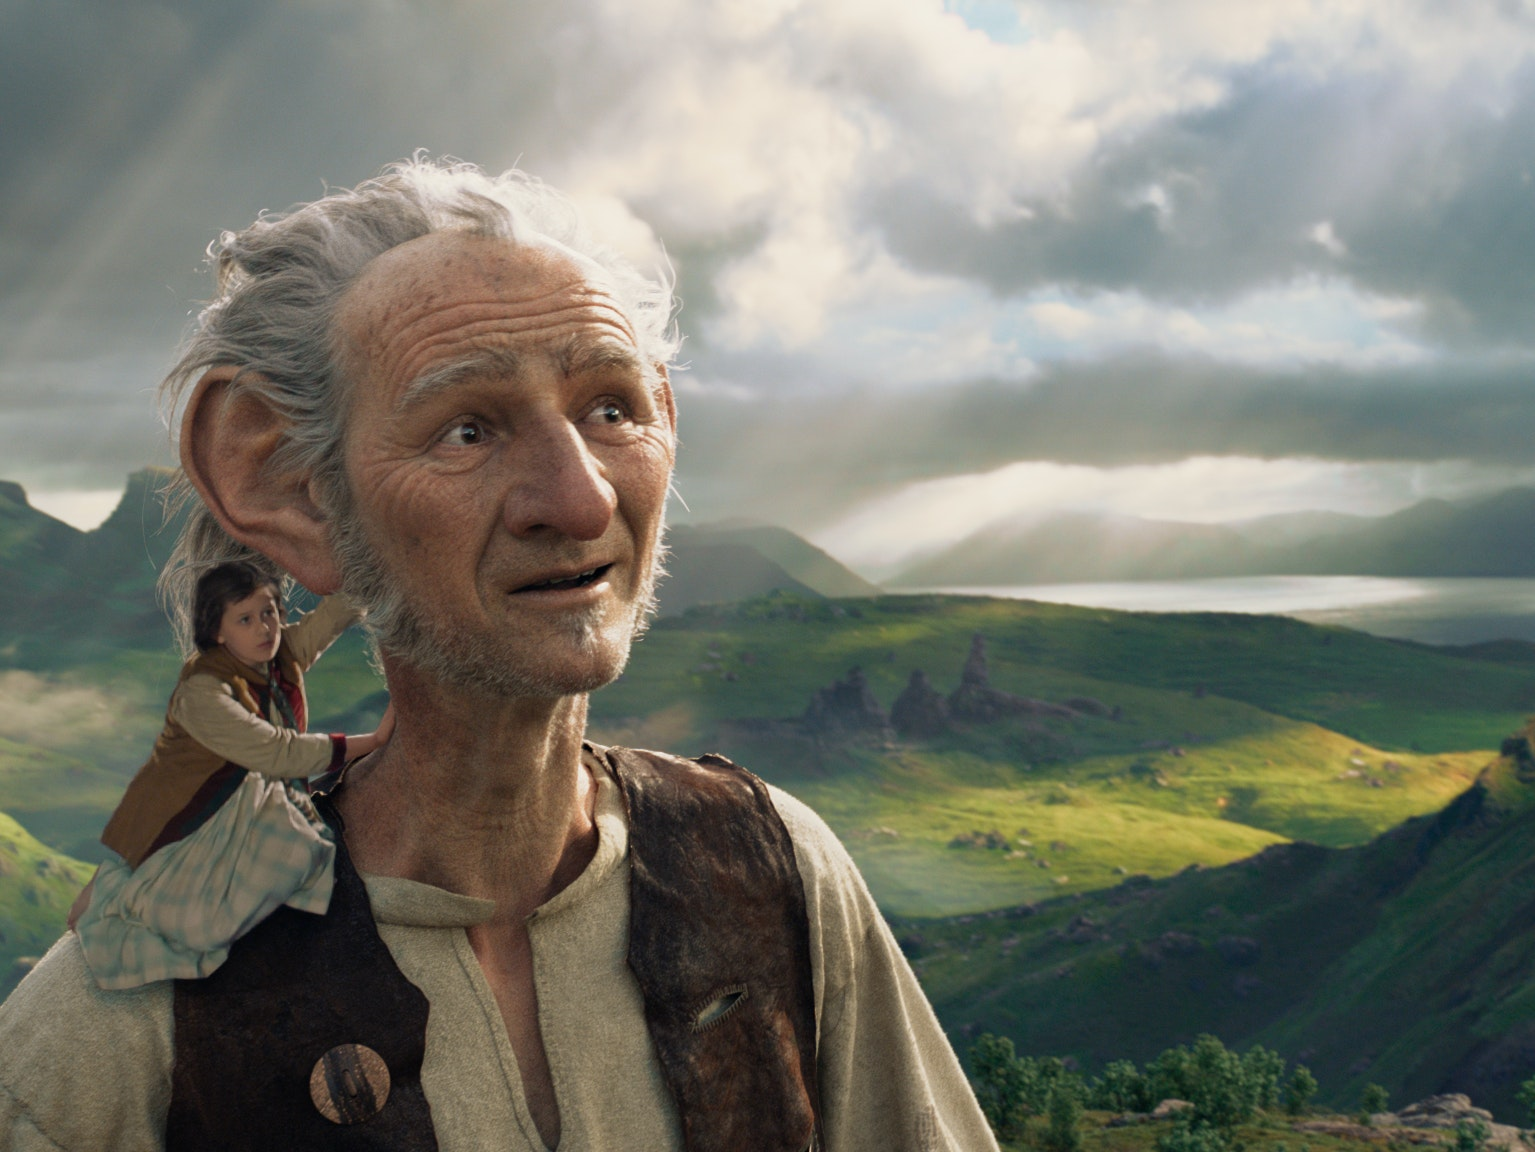 A Brief History of Giants Ahead of 'The BFG'